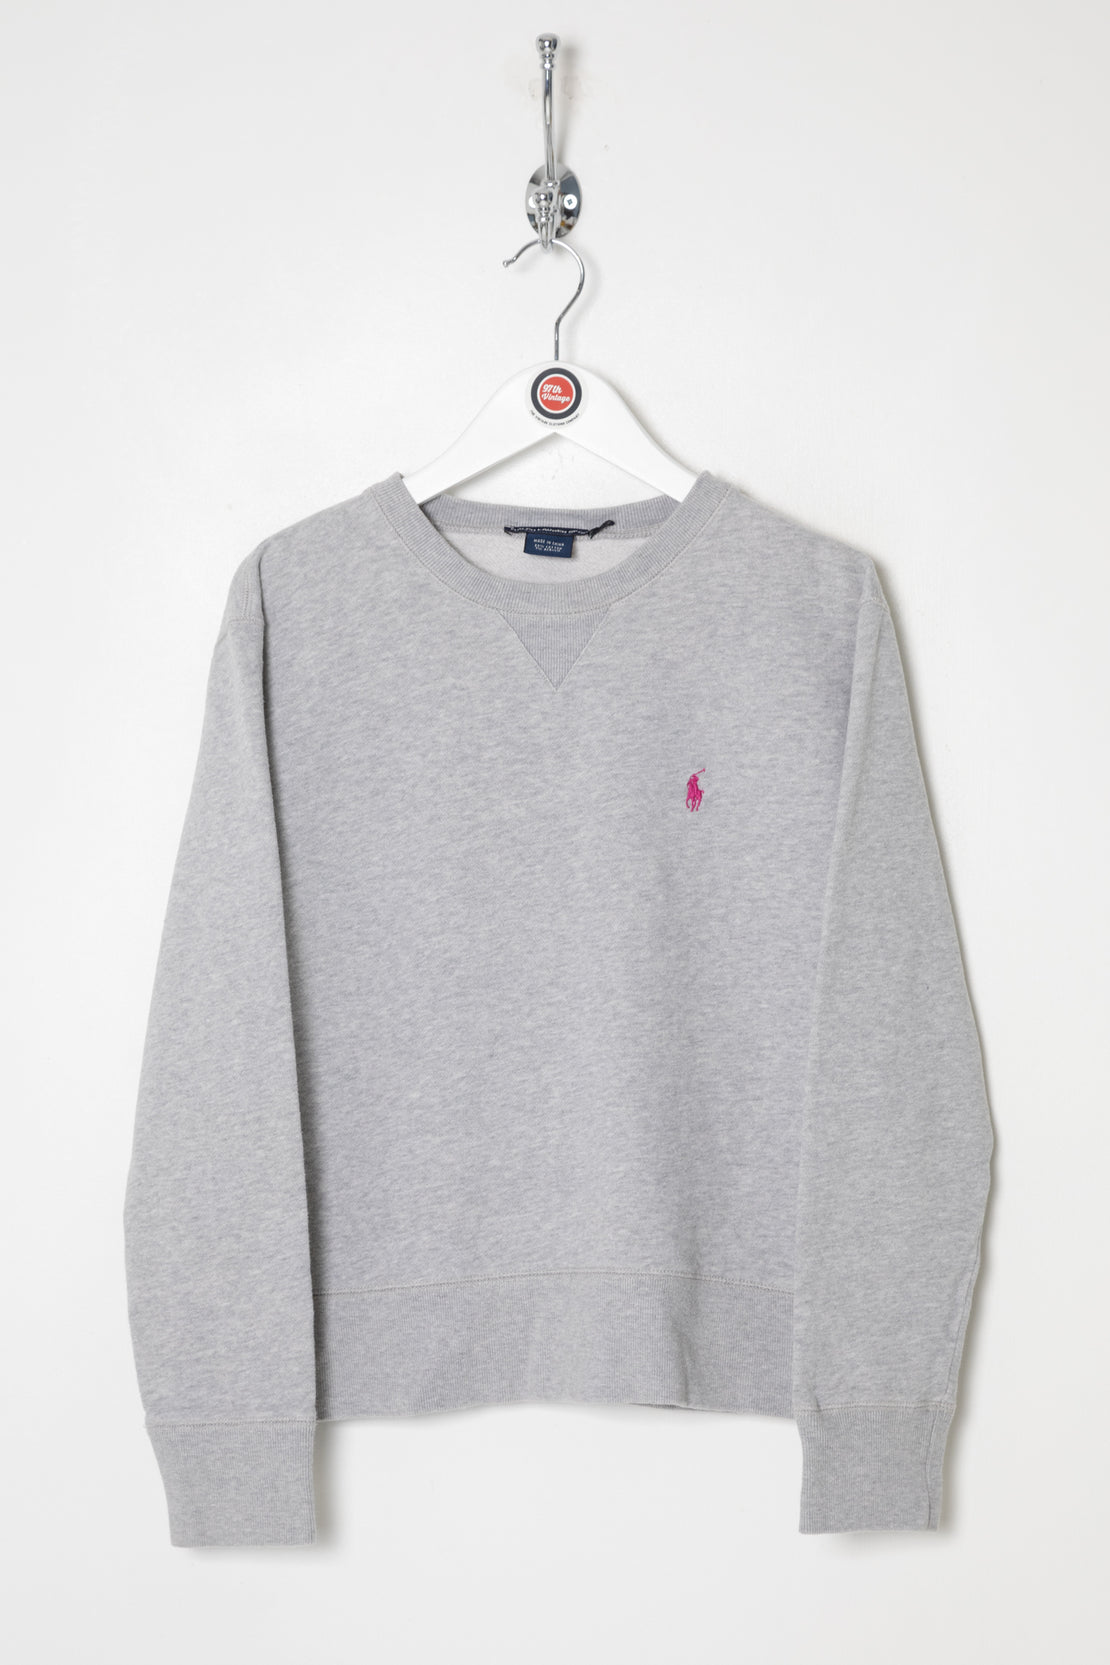 Women's Ralph Lauren Sweatshirt (S)